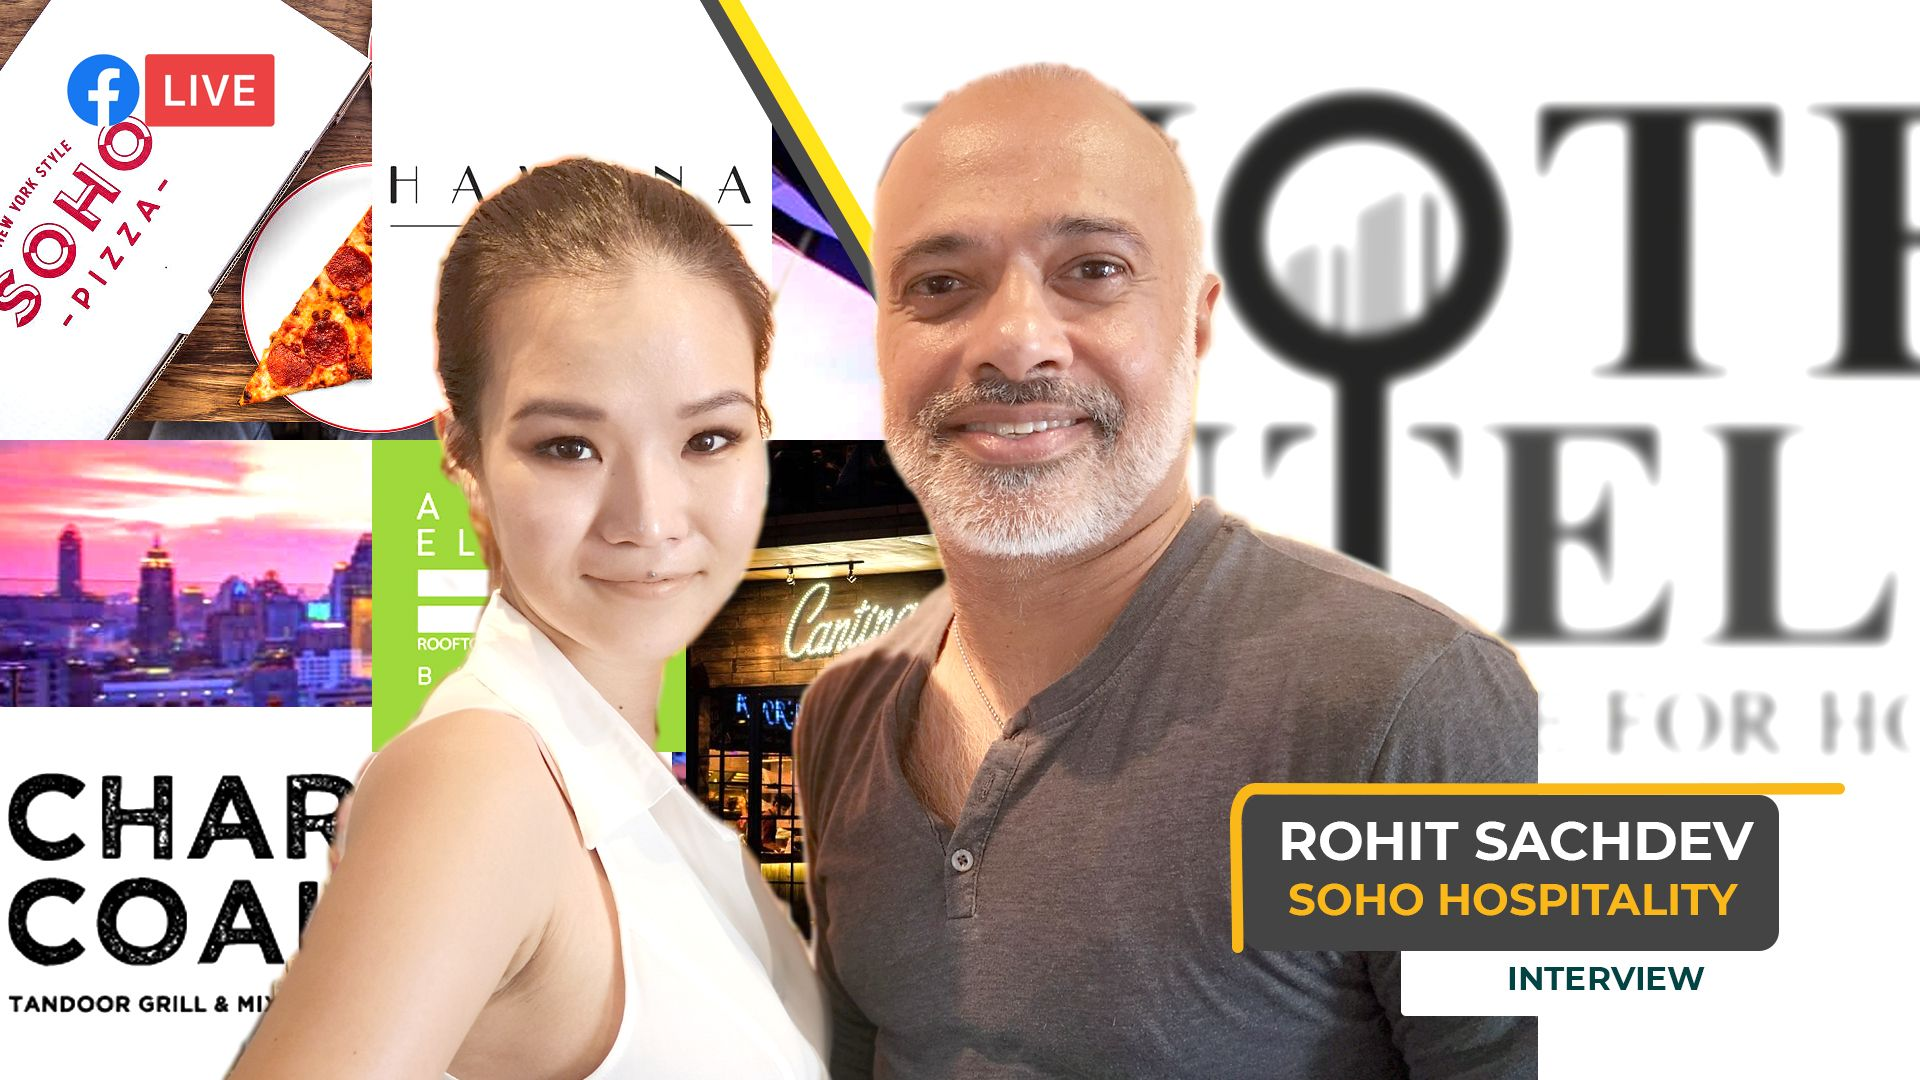 Interview with F&B Visionary Rohit Sachdev SOHO Hospitality